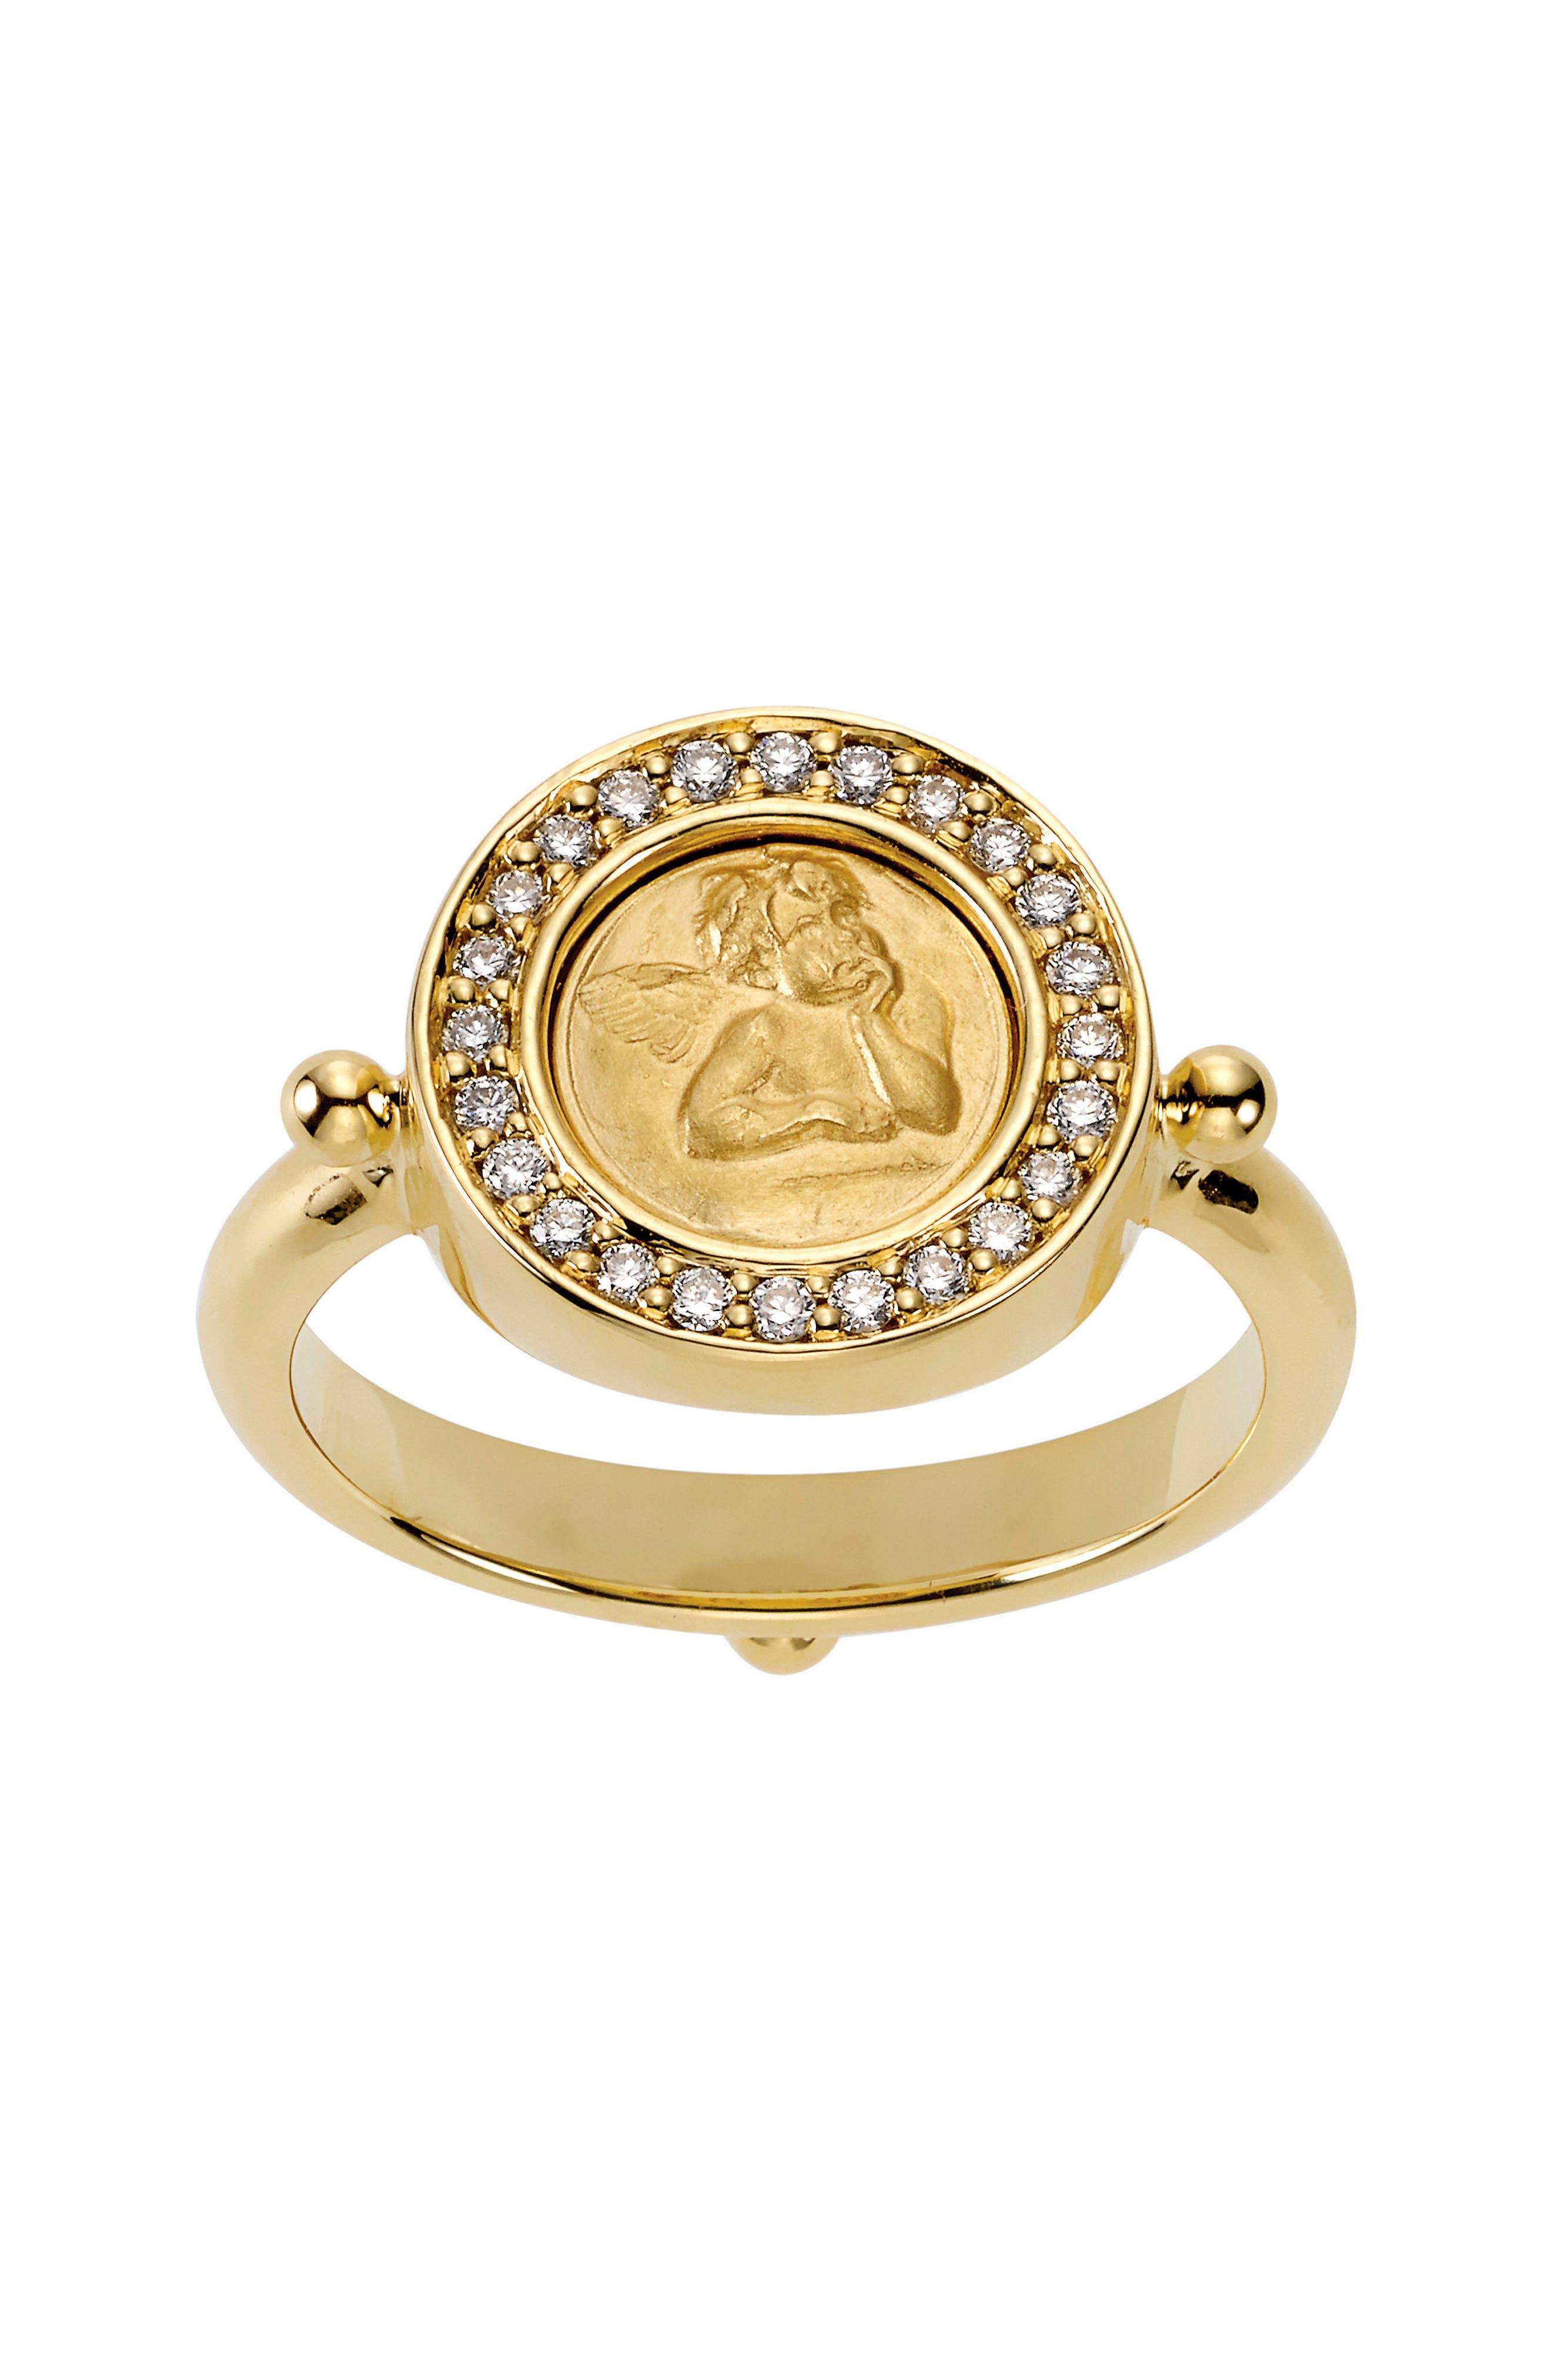 Temple St. Clair Diamond Pavé Ring,                         Main,                         color, YELLOW GOLD